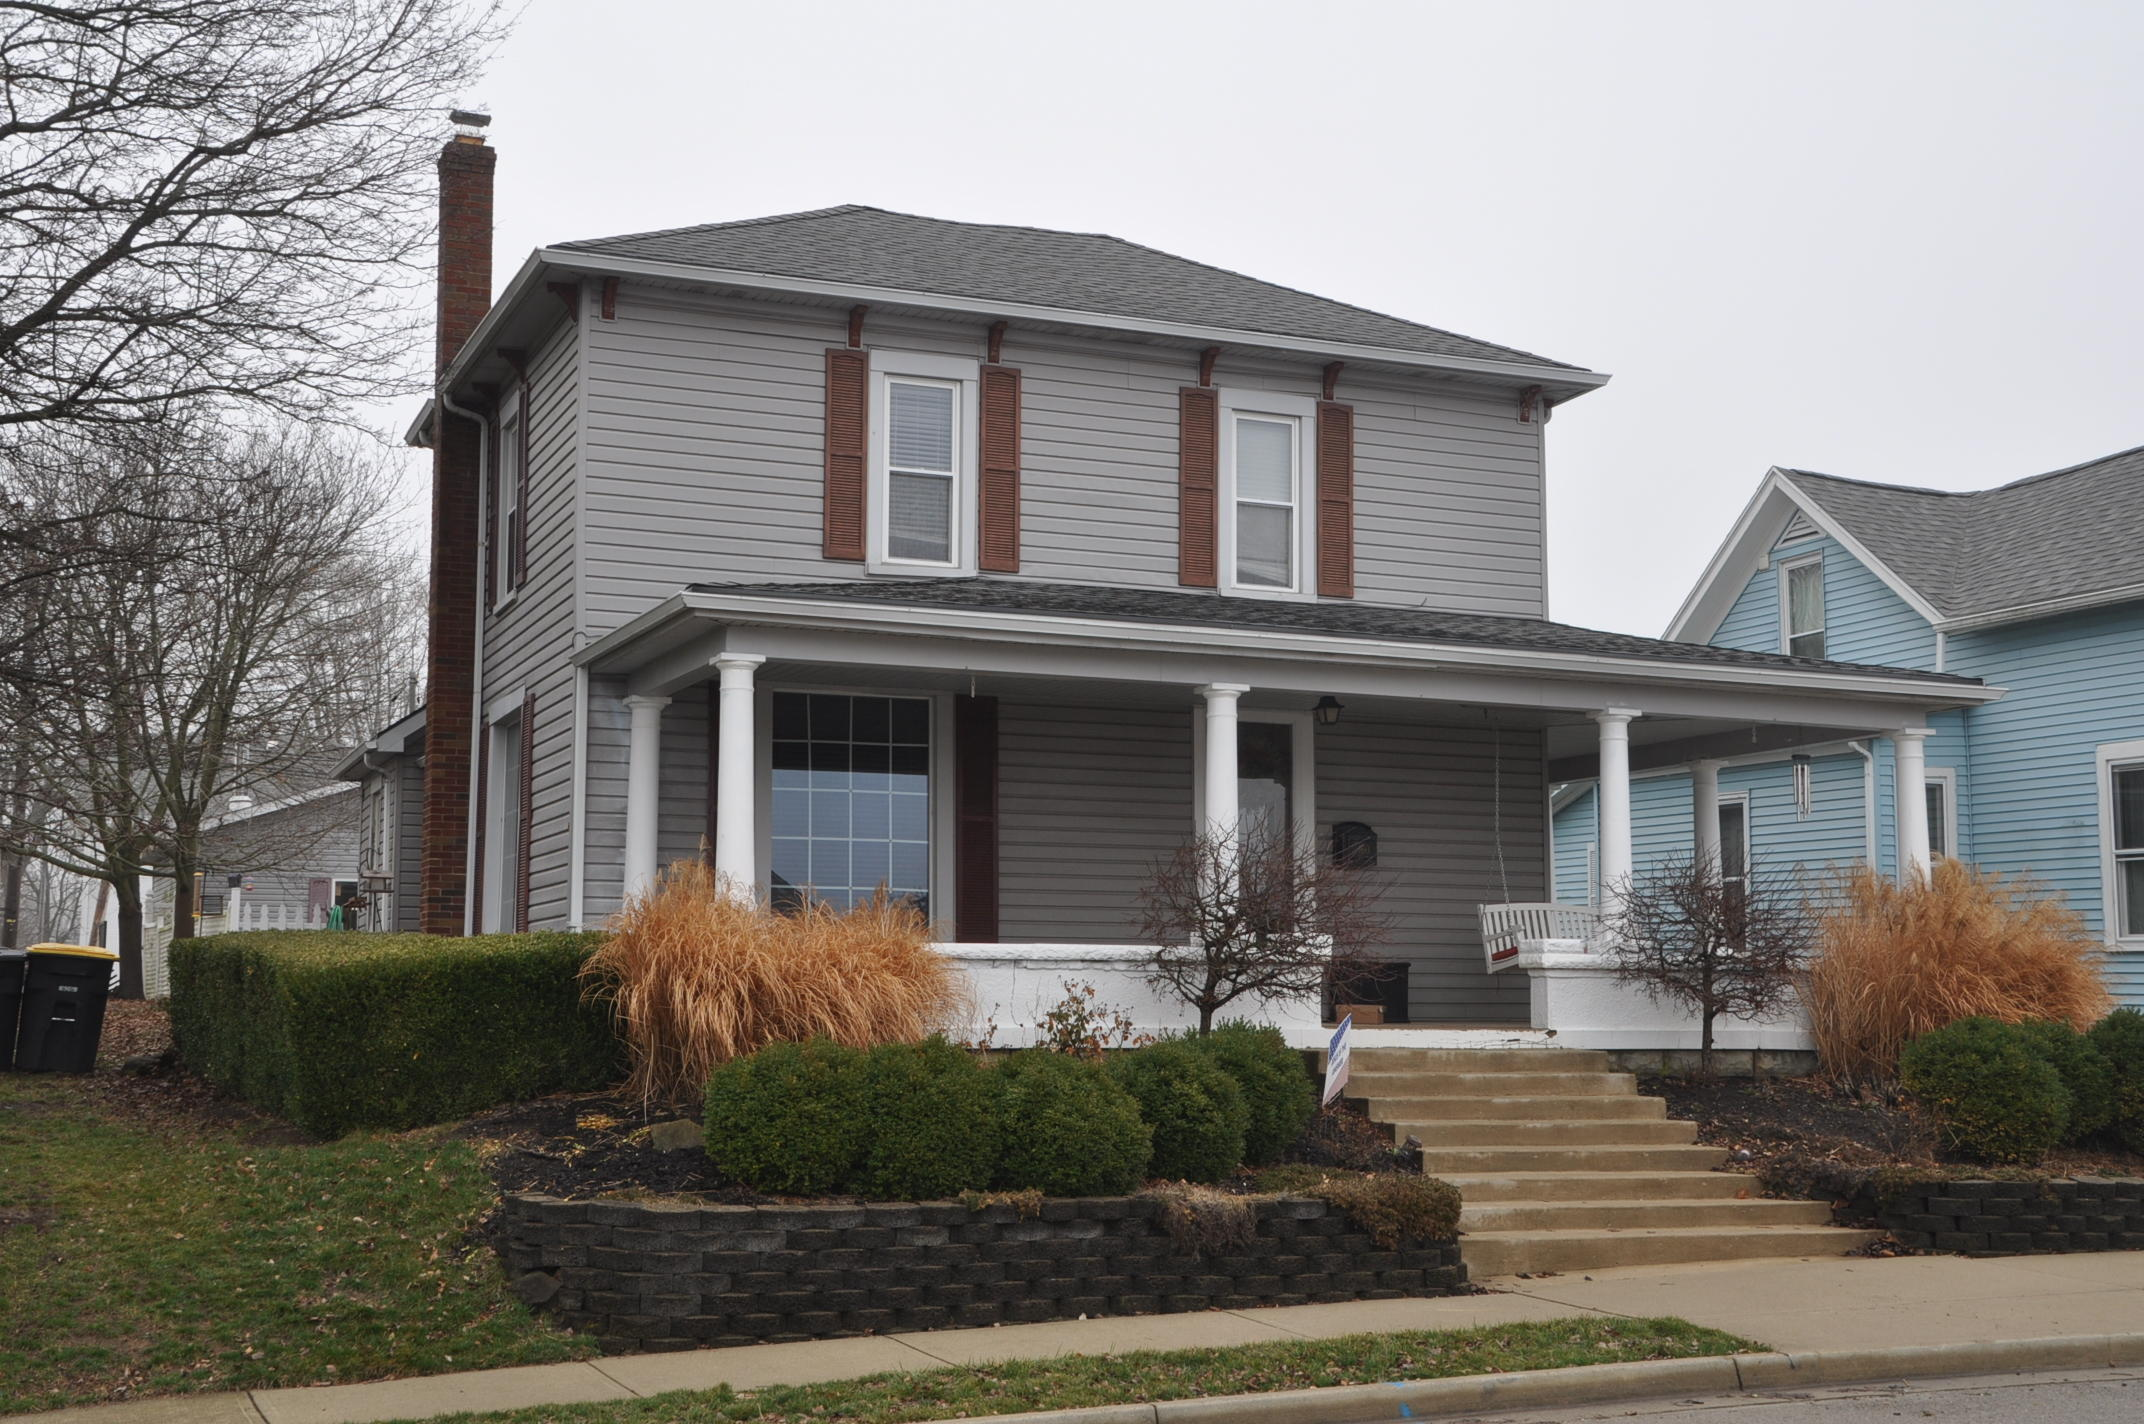 160 N Pearl Street Property Photo - Covington, OH real estate listing